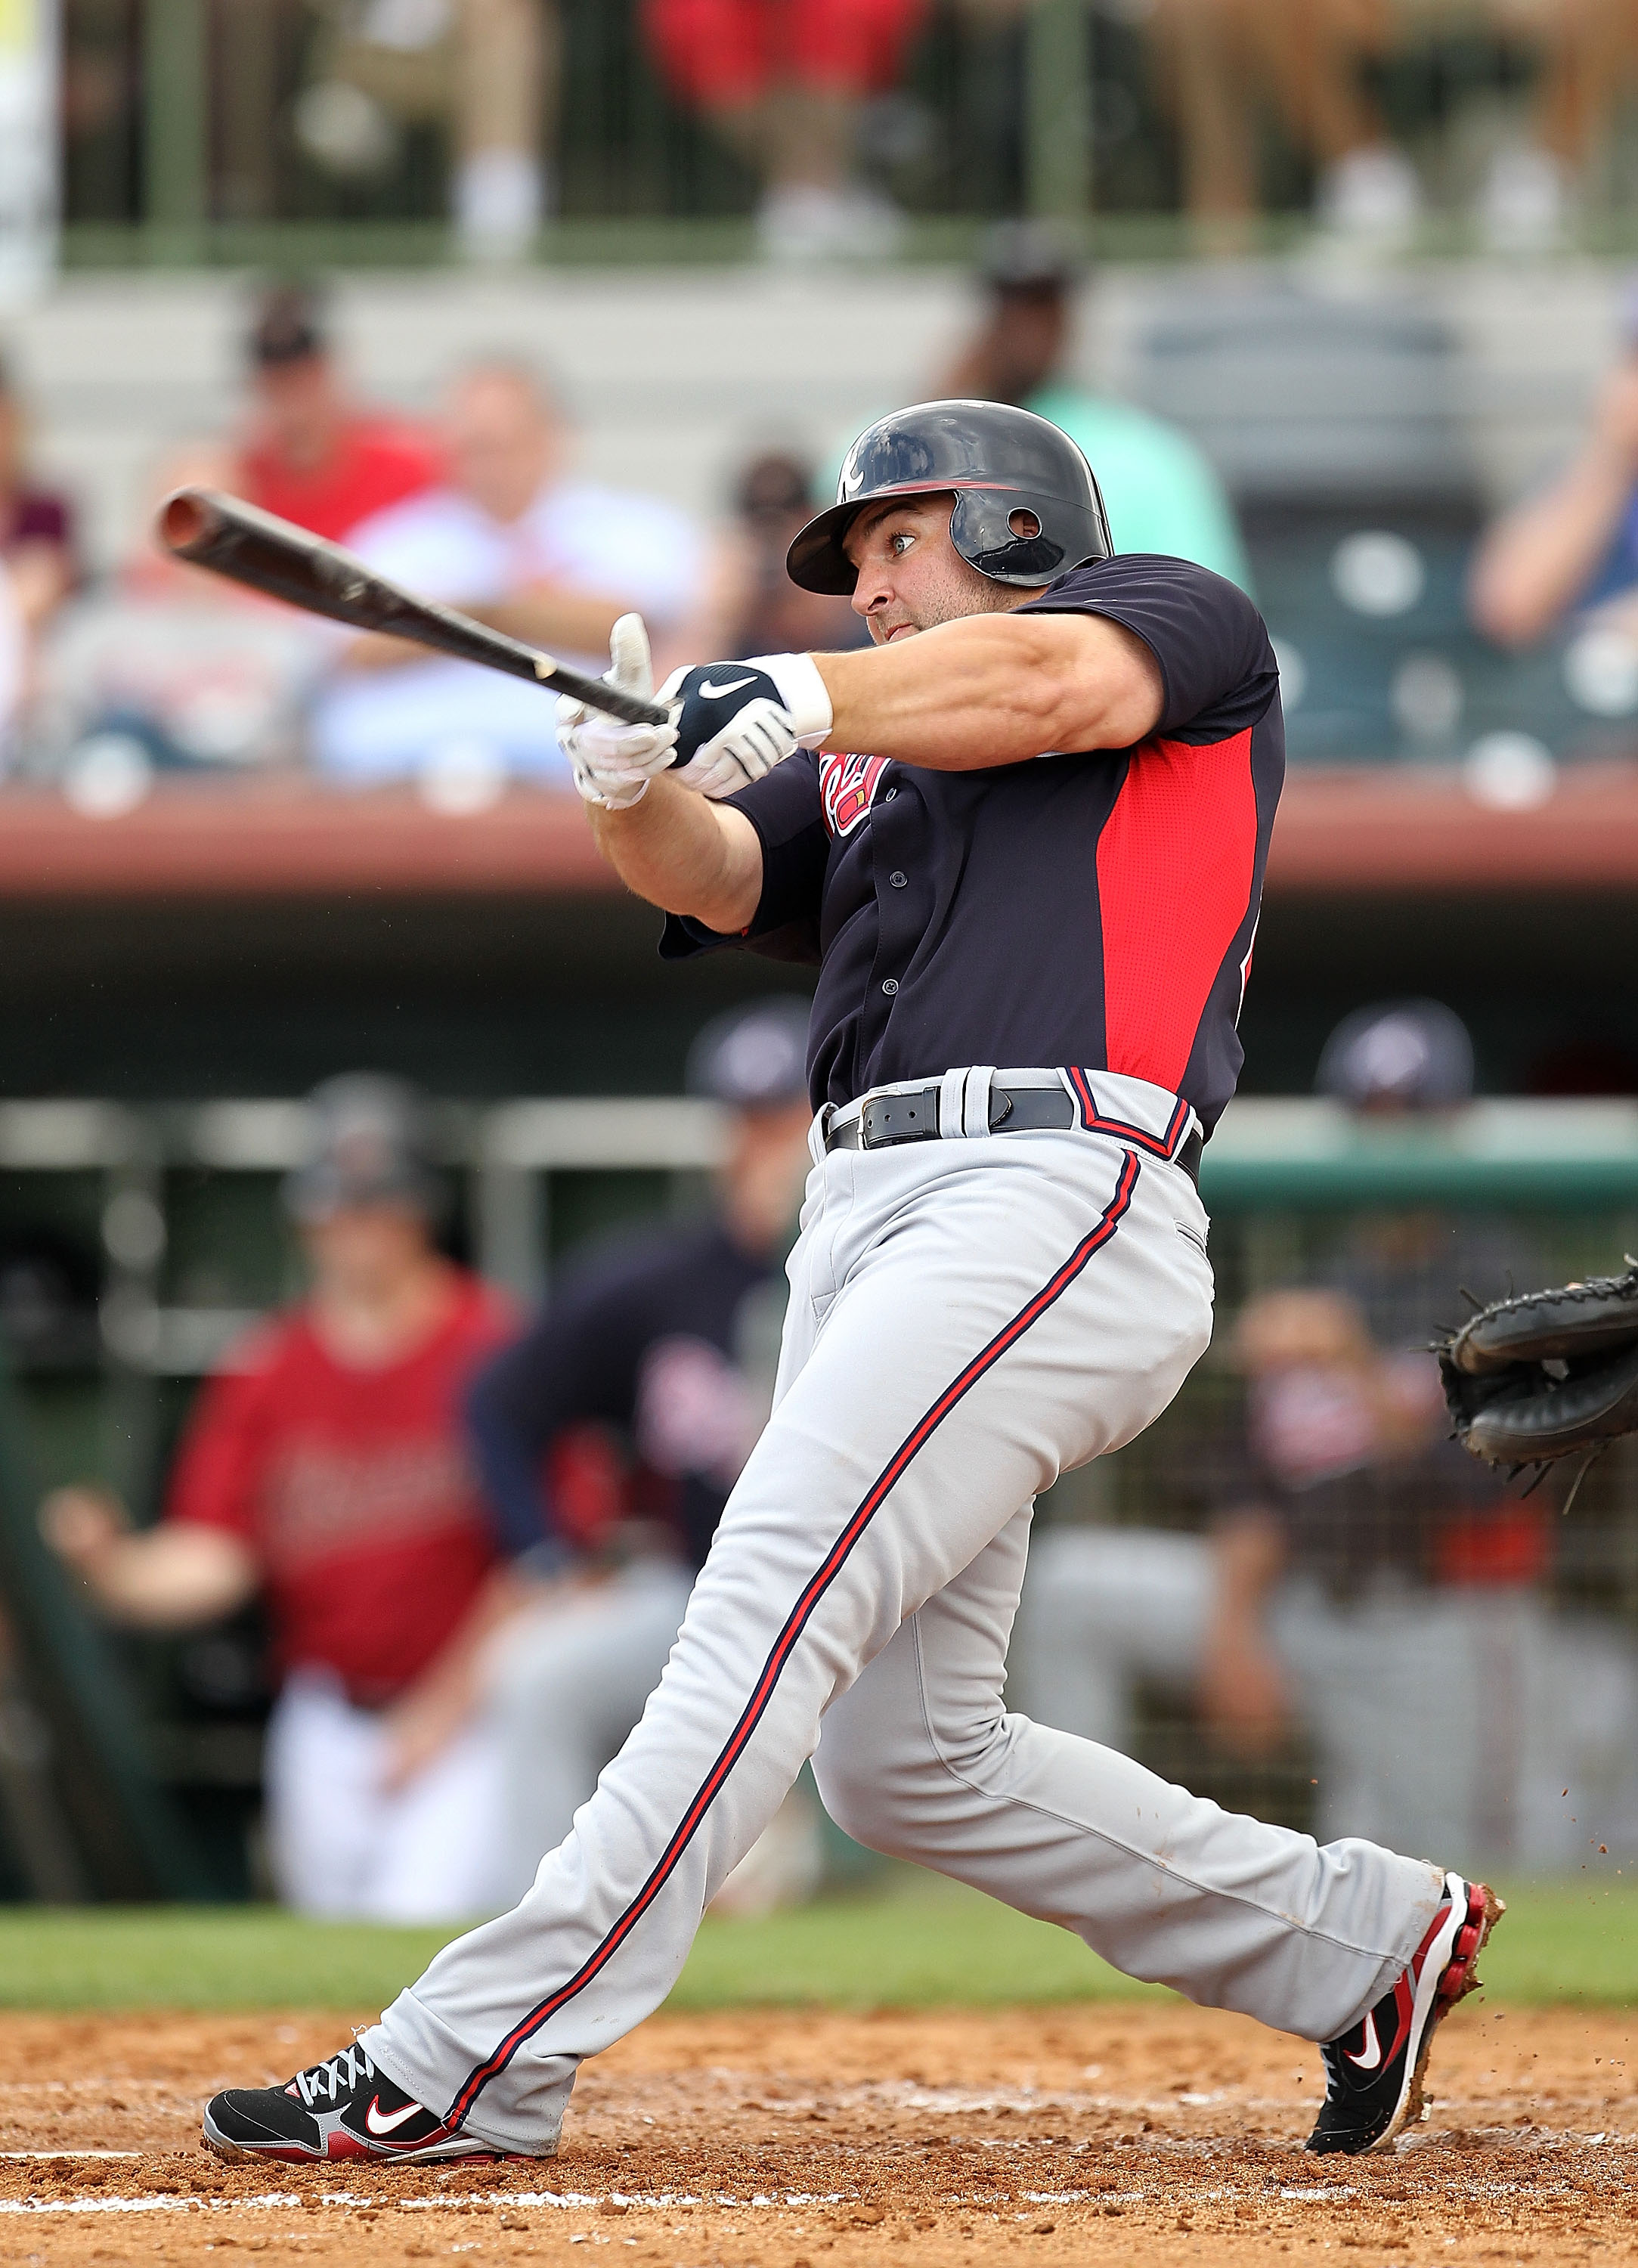 KISSIMMEE, FL - MARCH 01:  Dan Uggla #26 of the Atlanta Braves bats  during a Spring Training game against the Houston Astros at Osceola County Stadium on March 1, 2011 in Kissimmee, Florida.  (Photo by Mike Ehrmann/Getty Images)